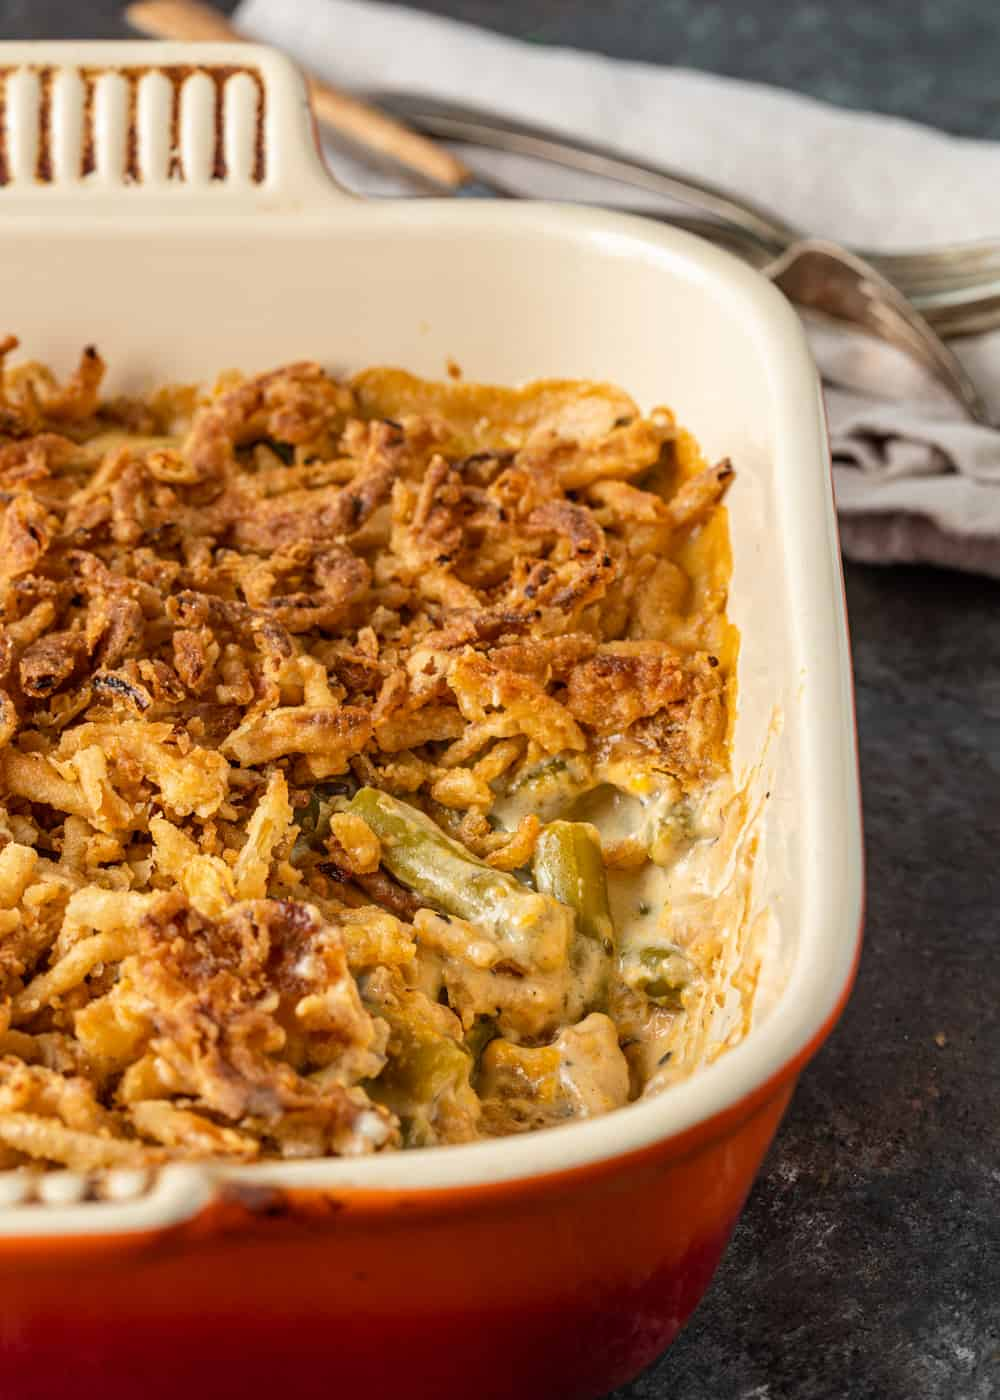 baking dish with easy green bean casserole on a counter next to a cloth napkin and silverware